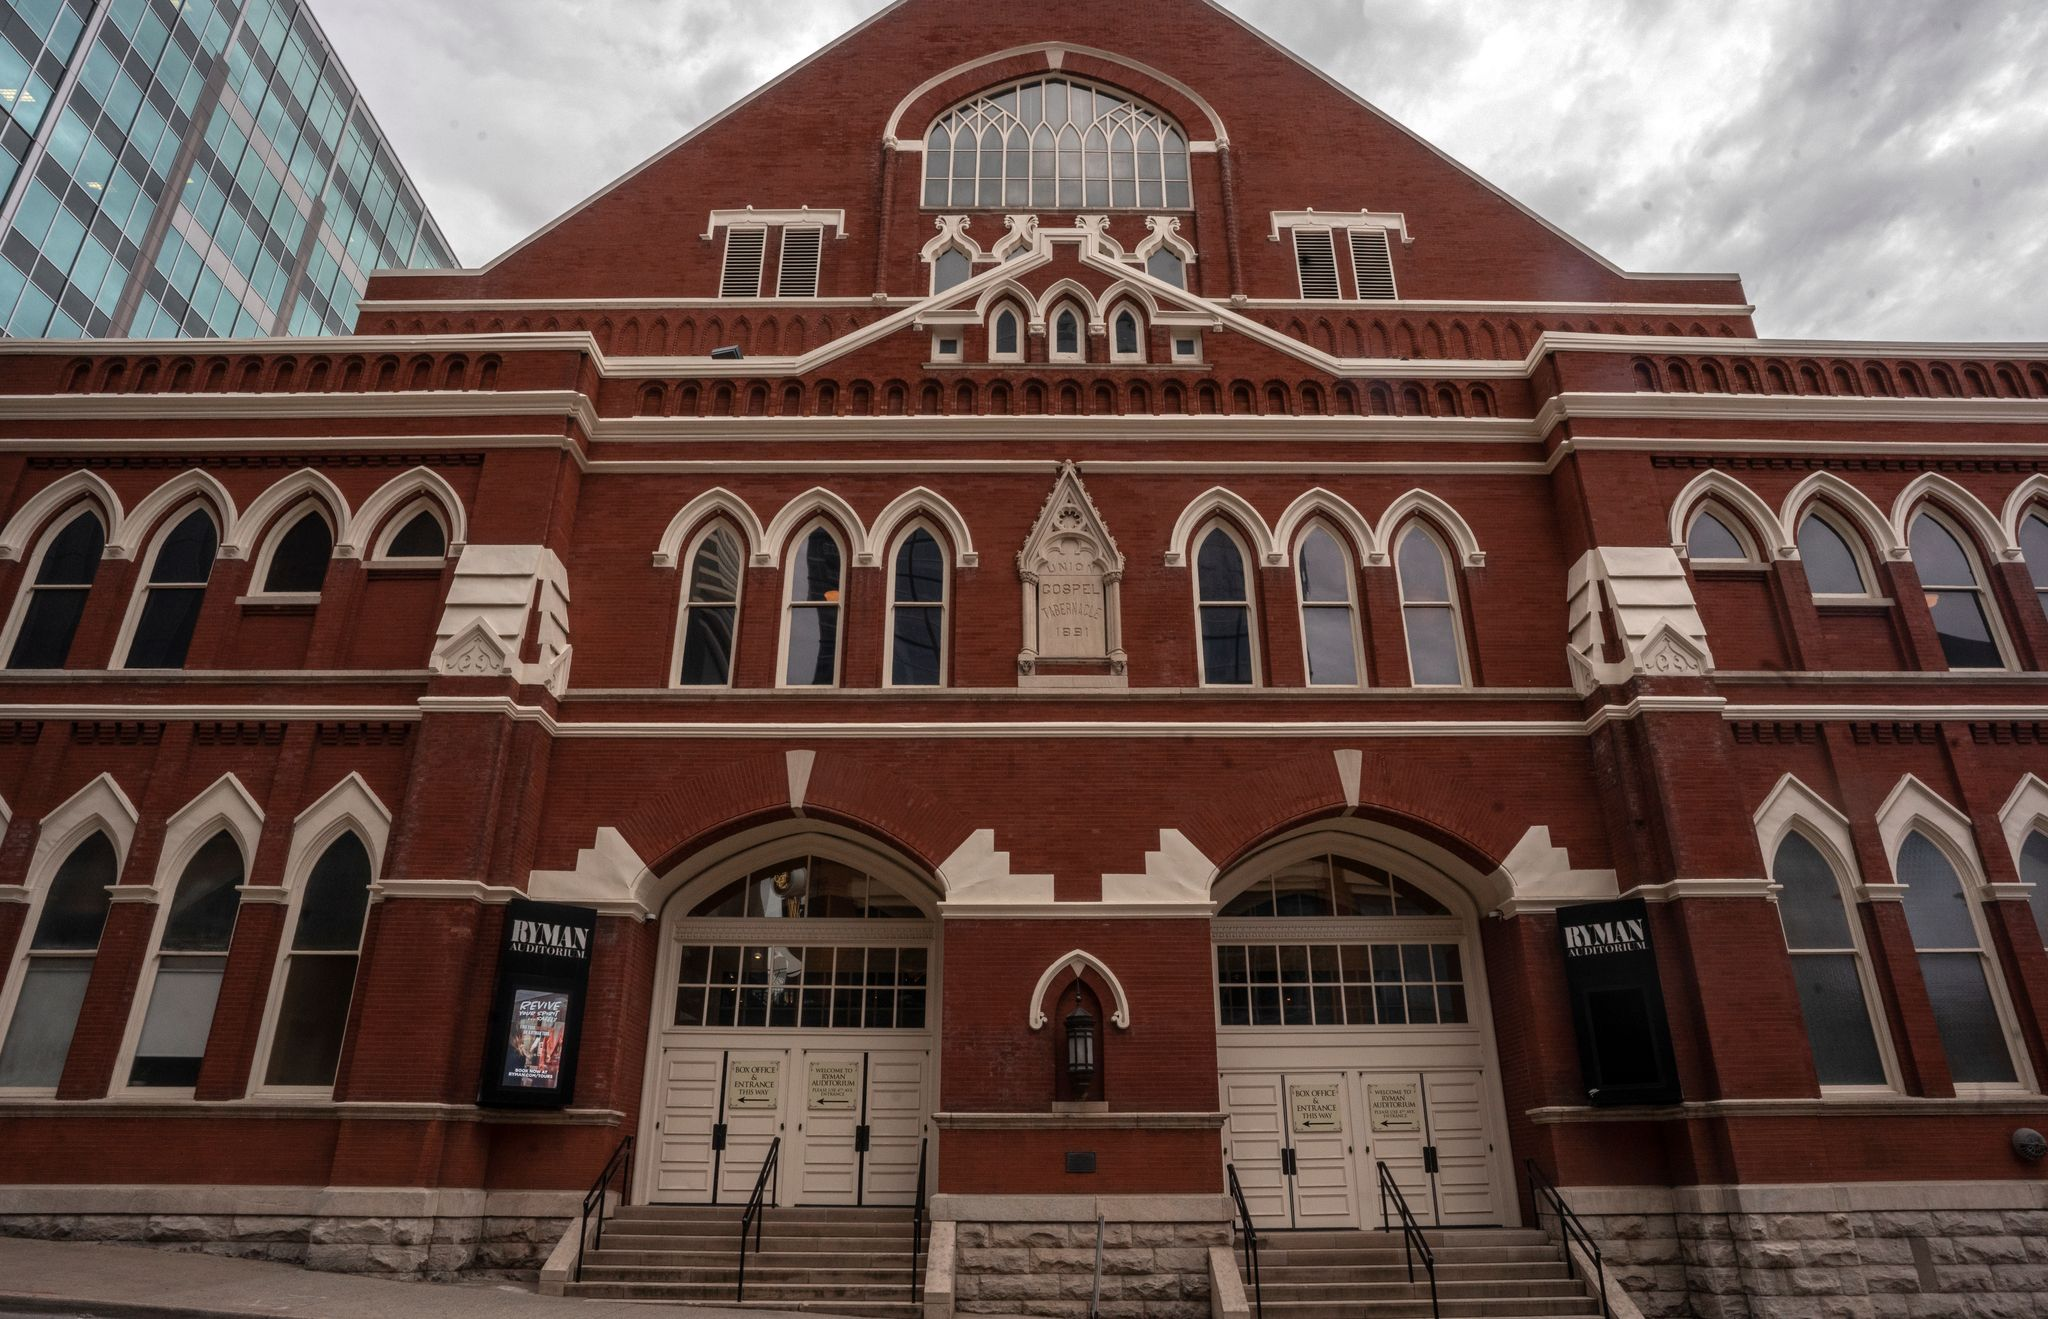 The Ryman Auditorium. (Photo: John Partipilo)